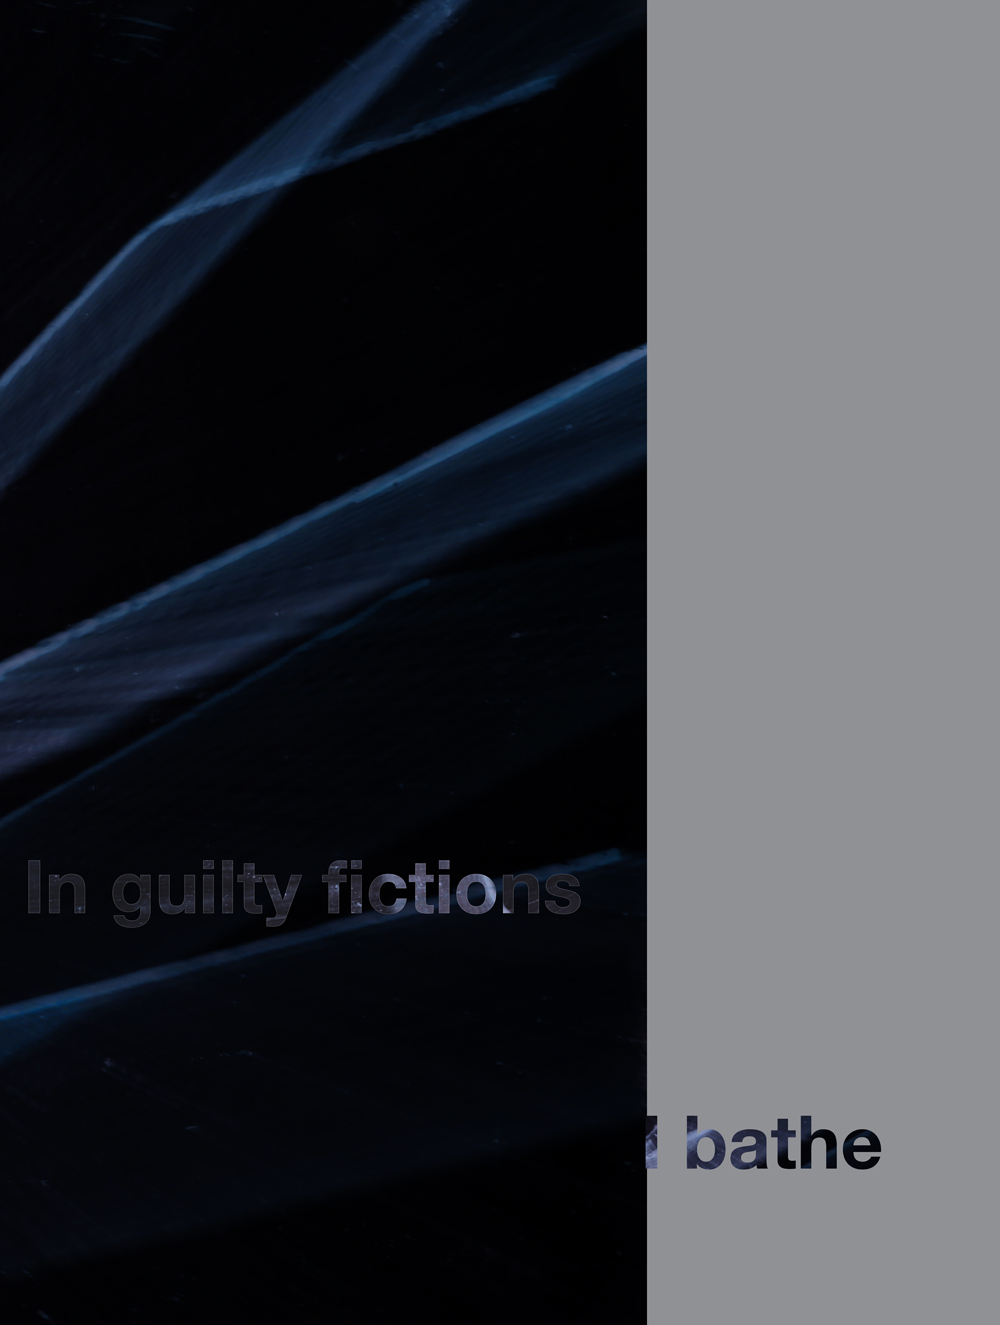 In guilty fictions. 2017 Digital Print on German Hahnemuhle paper 15.75 x 26.62 in